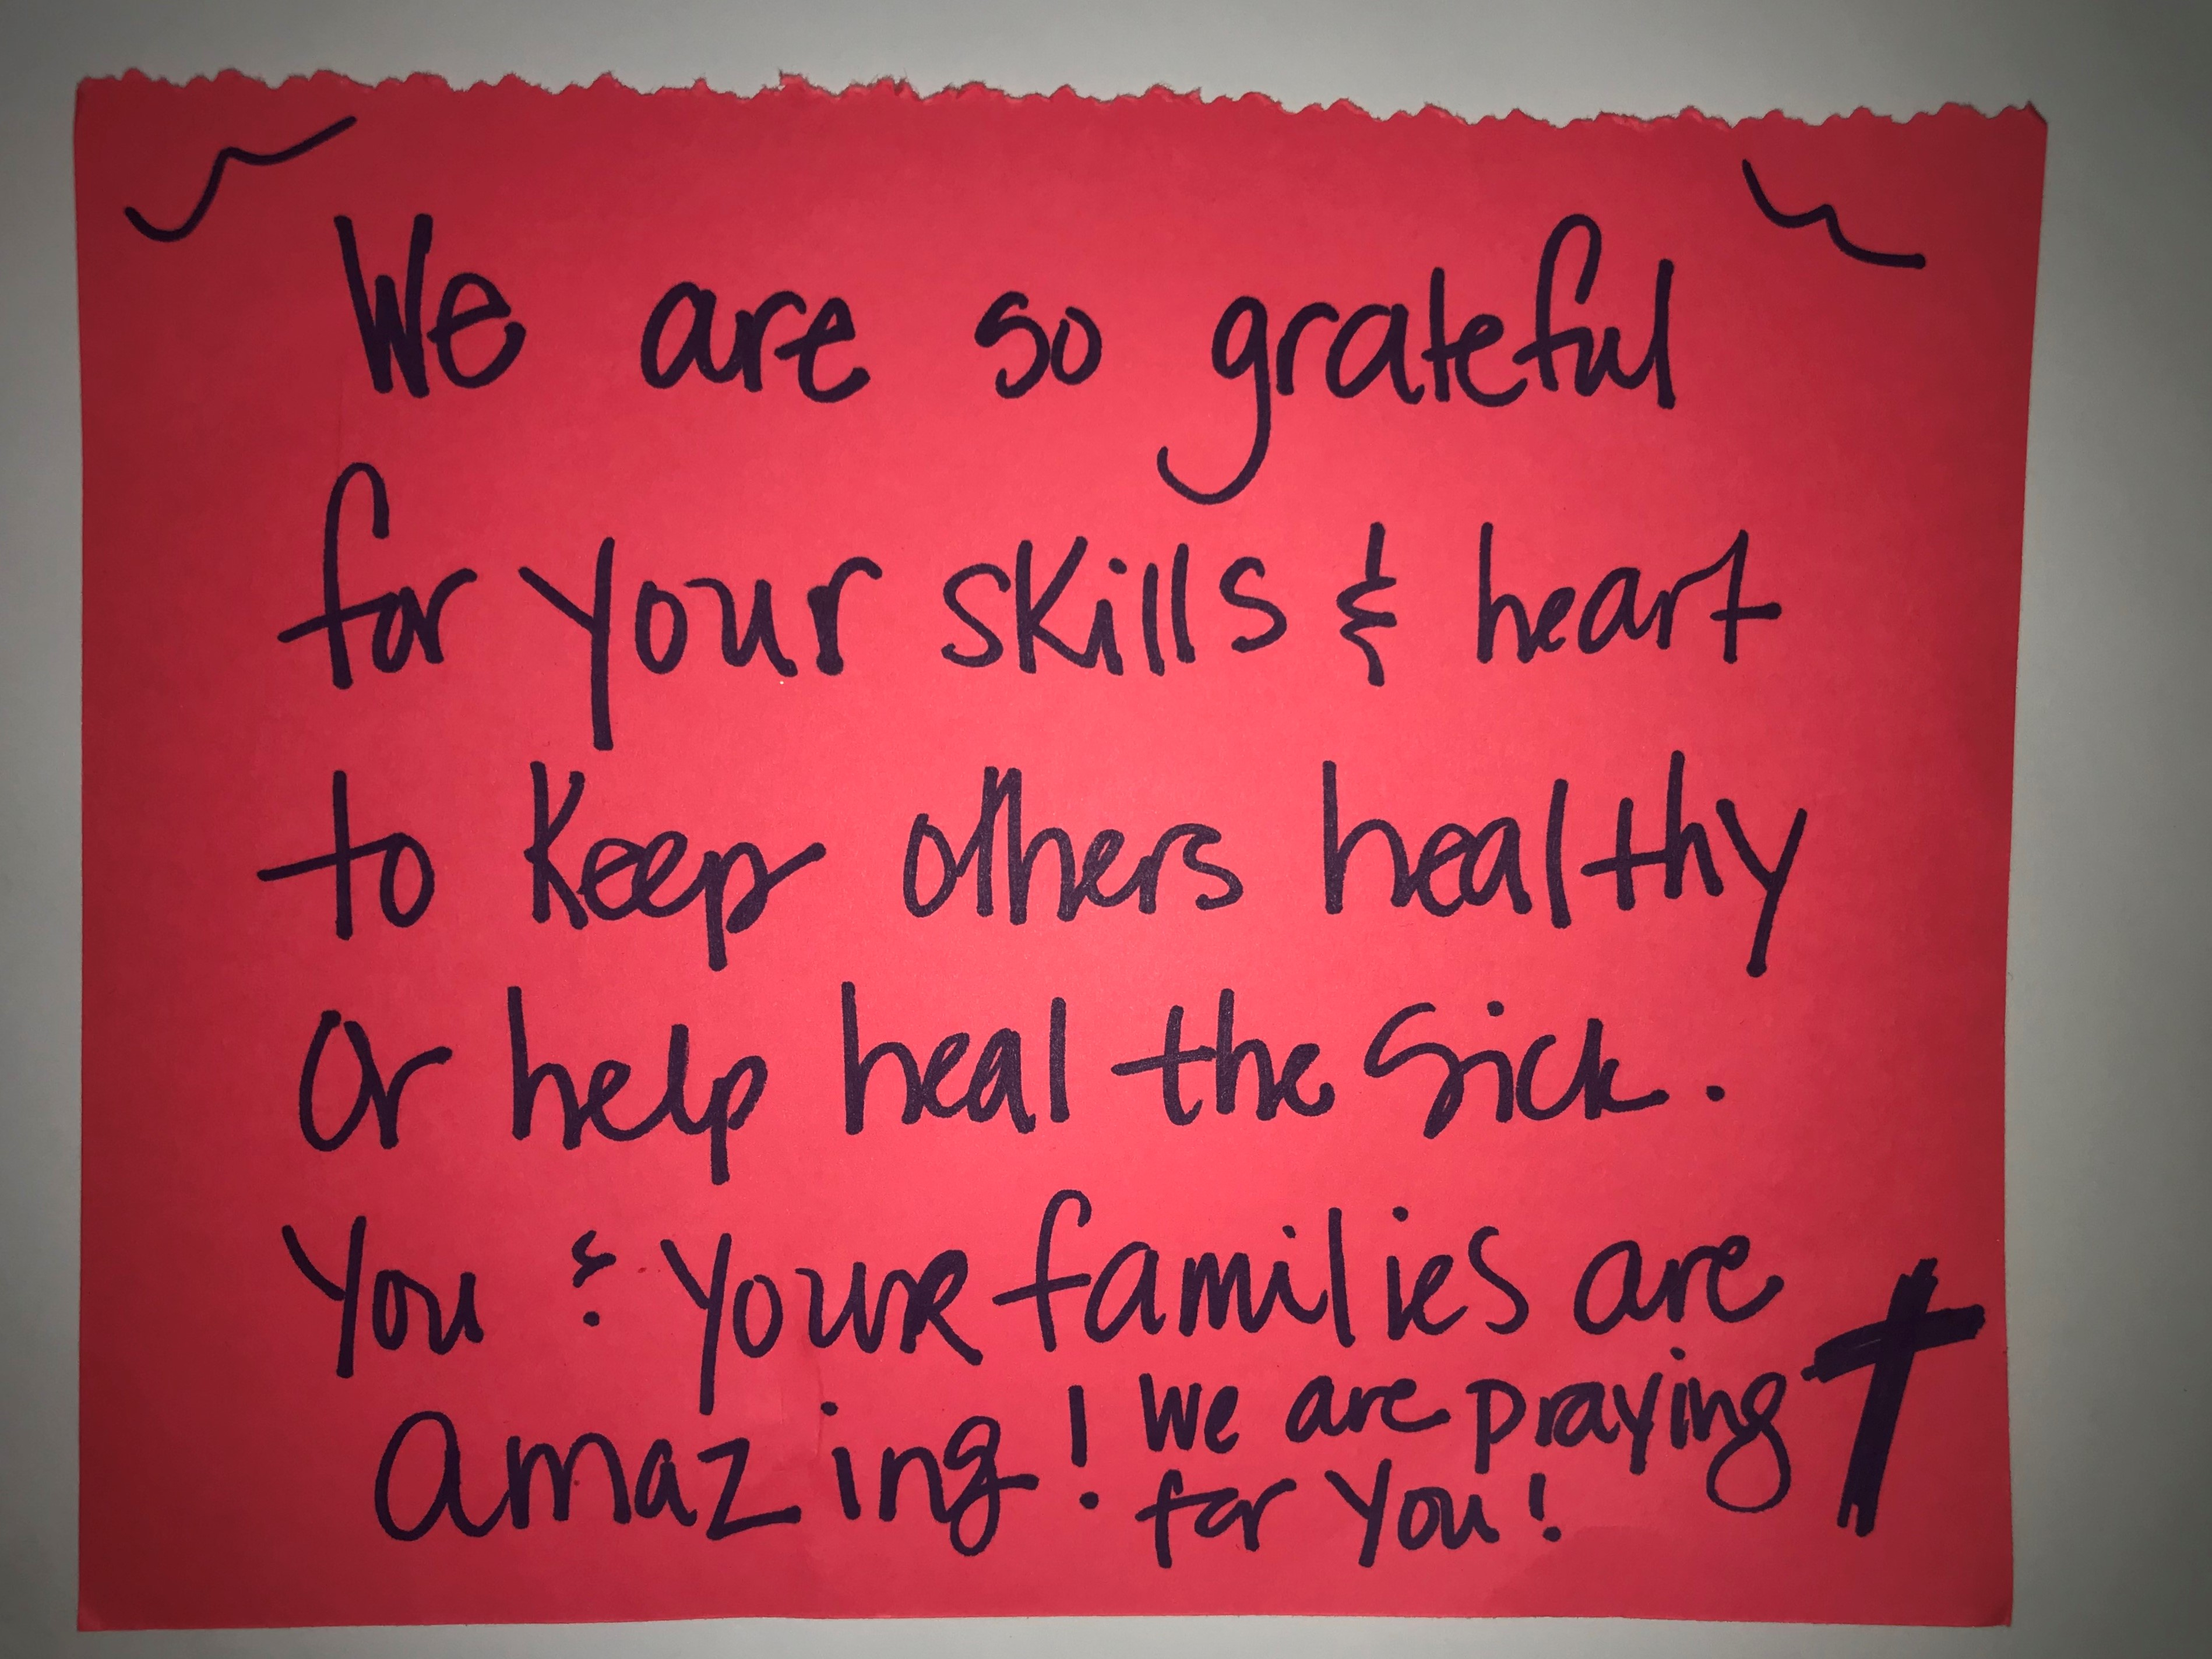 We are so grateful for your skills and heart to keep others healthy or help heal the sick.